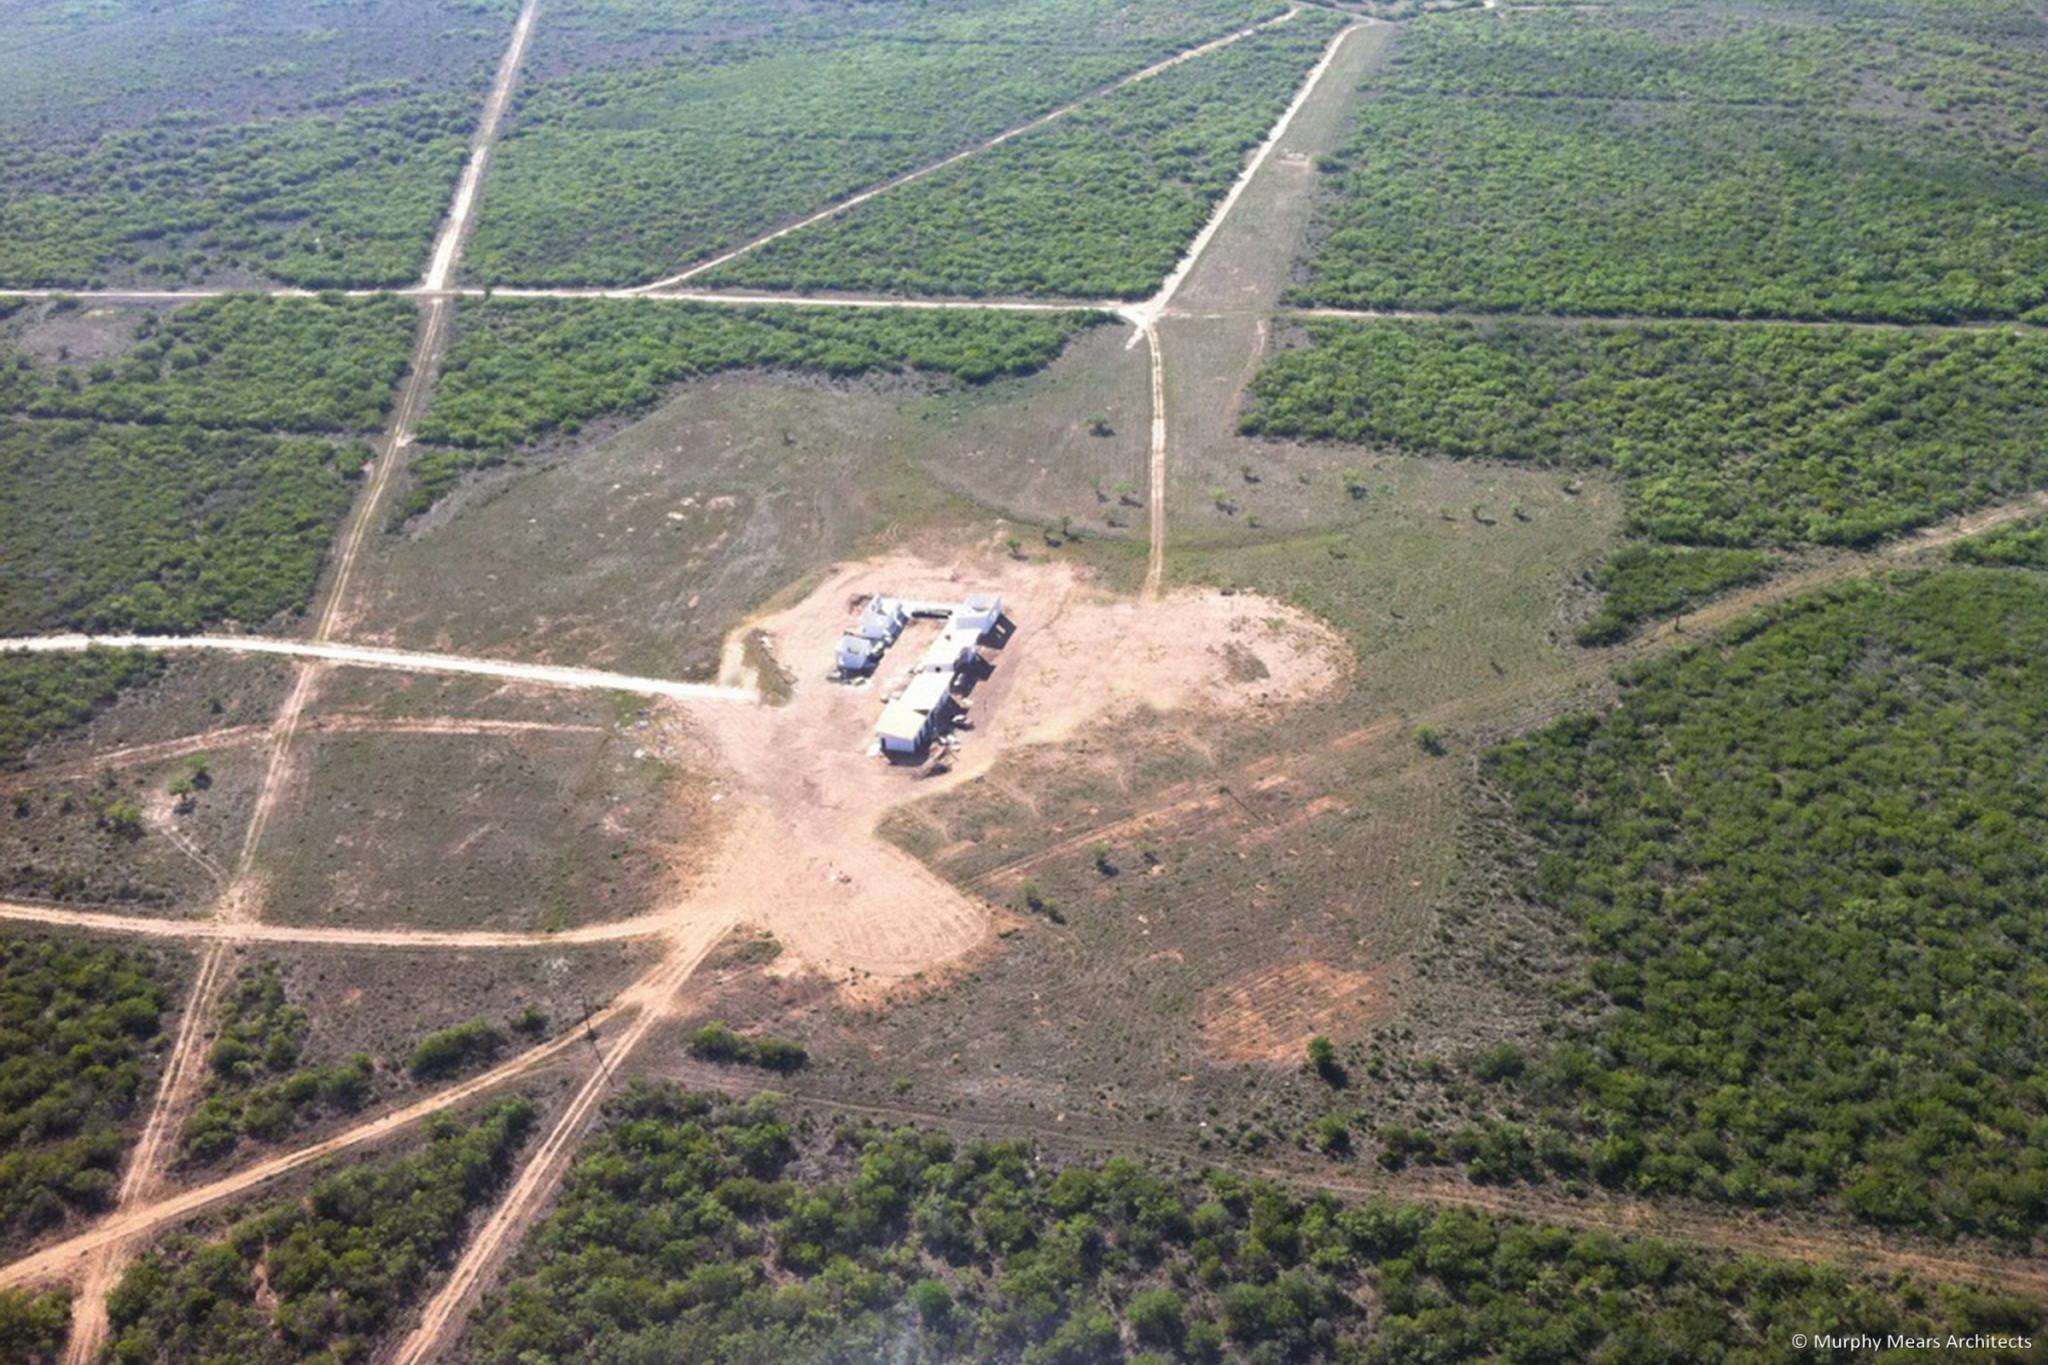 aerial view of ranch compound under construction with senderos extending into south texas landscape